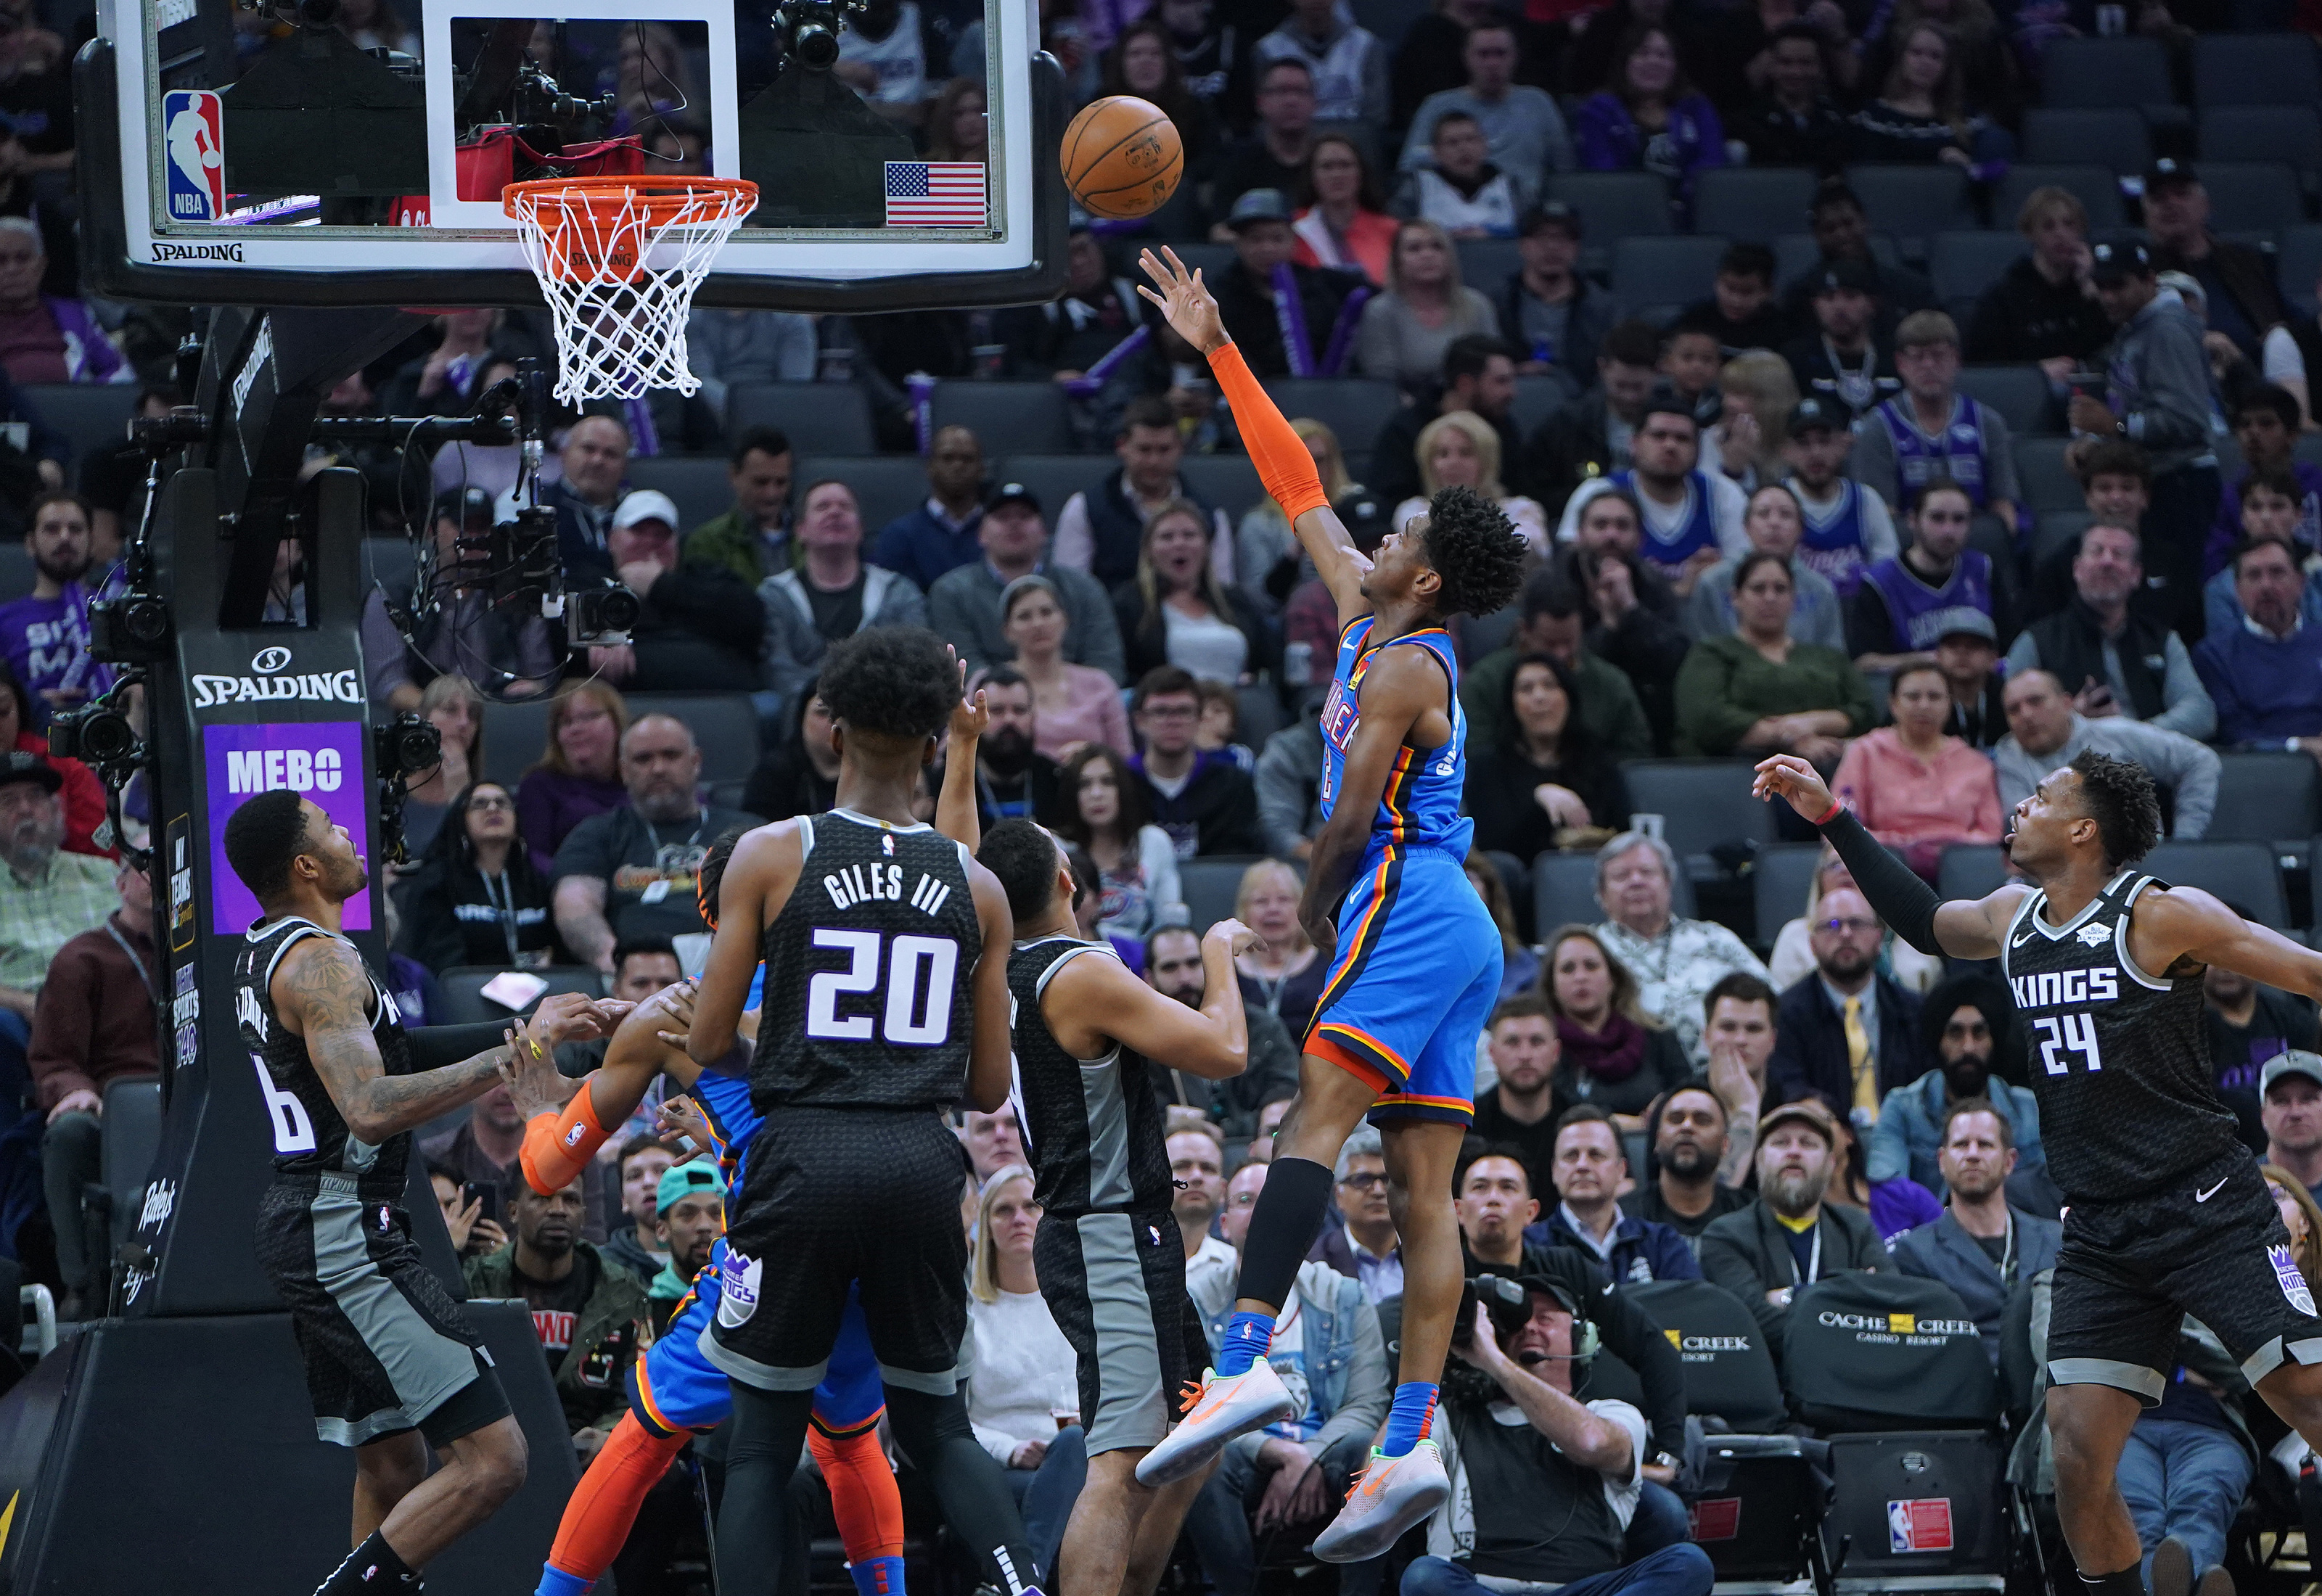 OKC Thunder: Gilgeous-Alexander in our top 5 for proposed H-O-R-S-E match